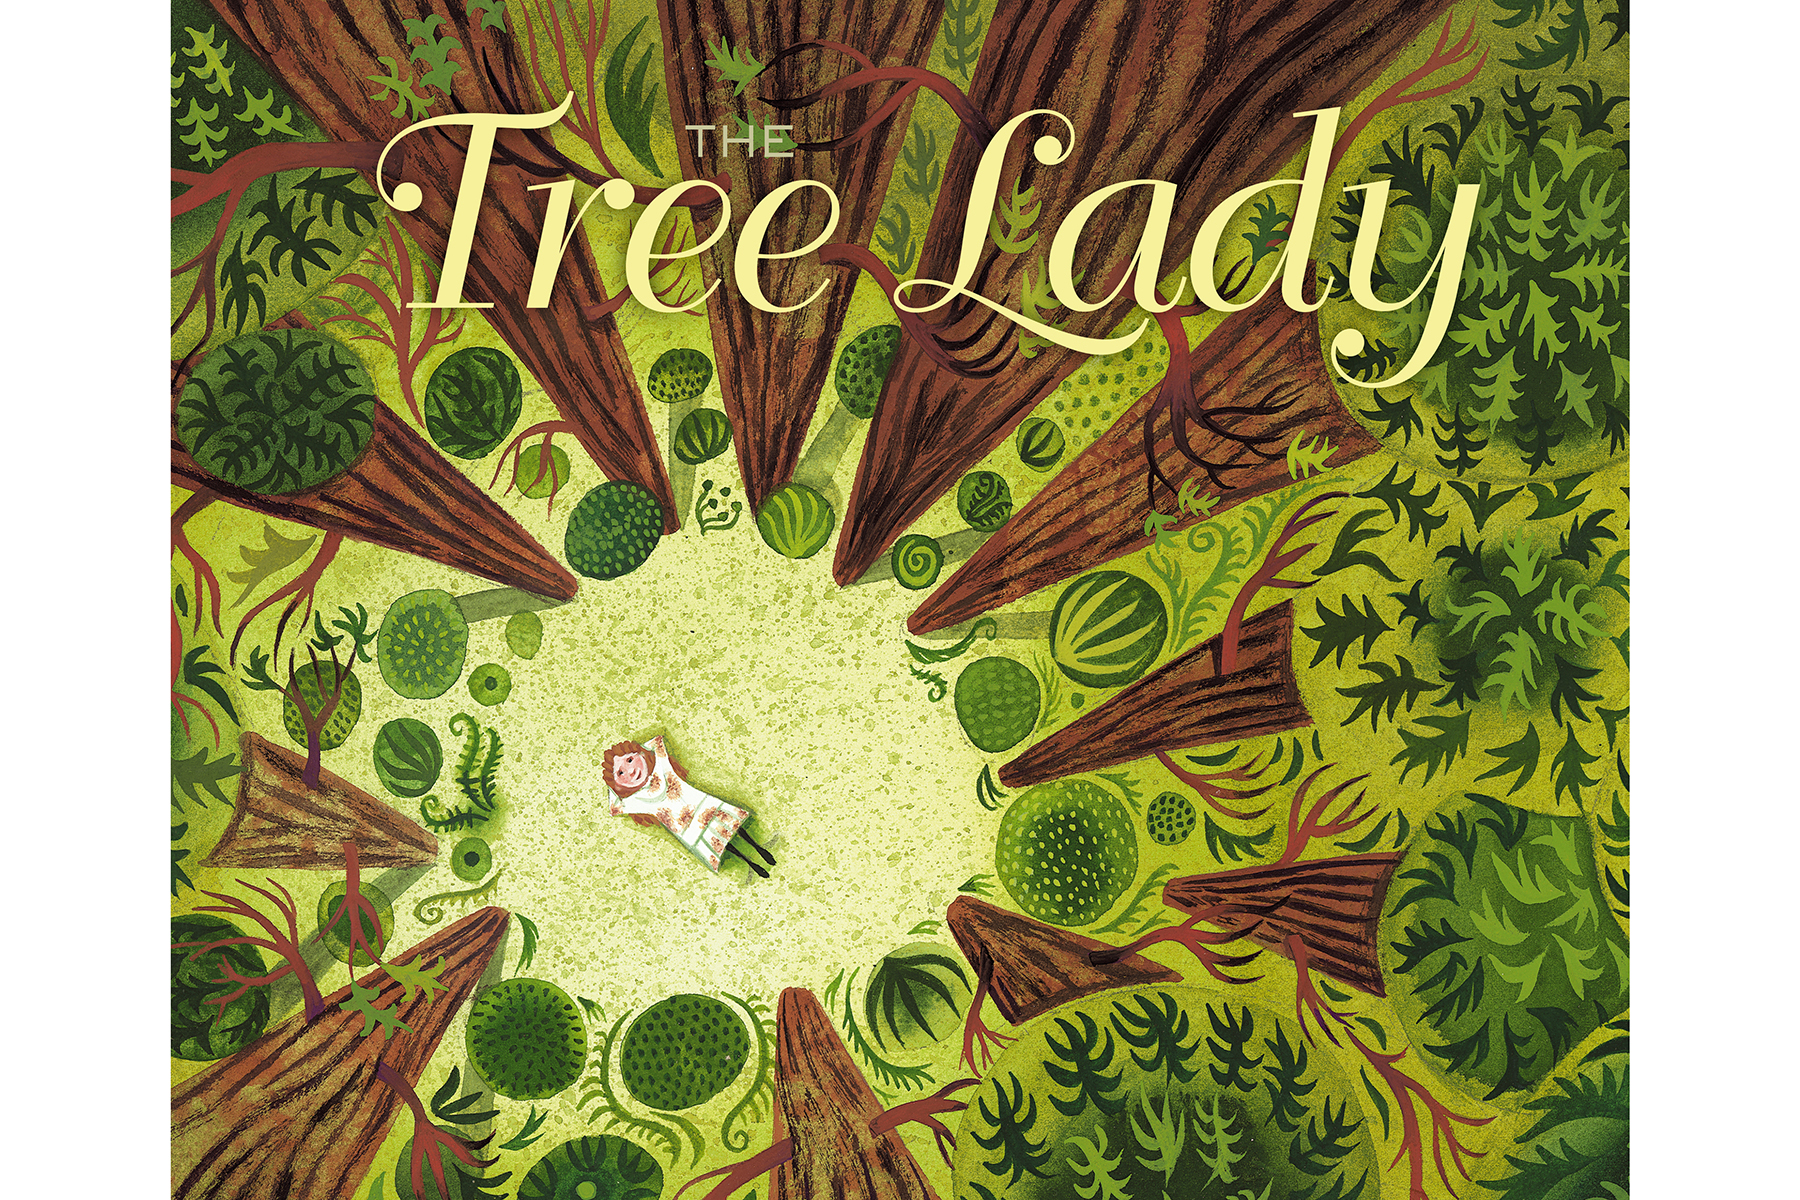 The Tree Lady: The True Story of How One Tree-Loving Woman Changed a City Forever, by H. Joseph Hopkins, Jill McElmurry (Illustrator)